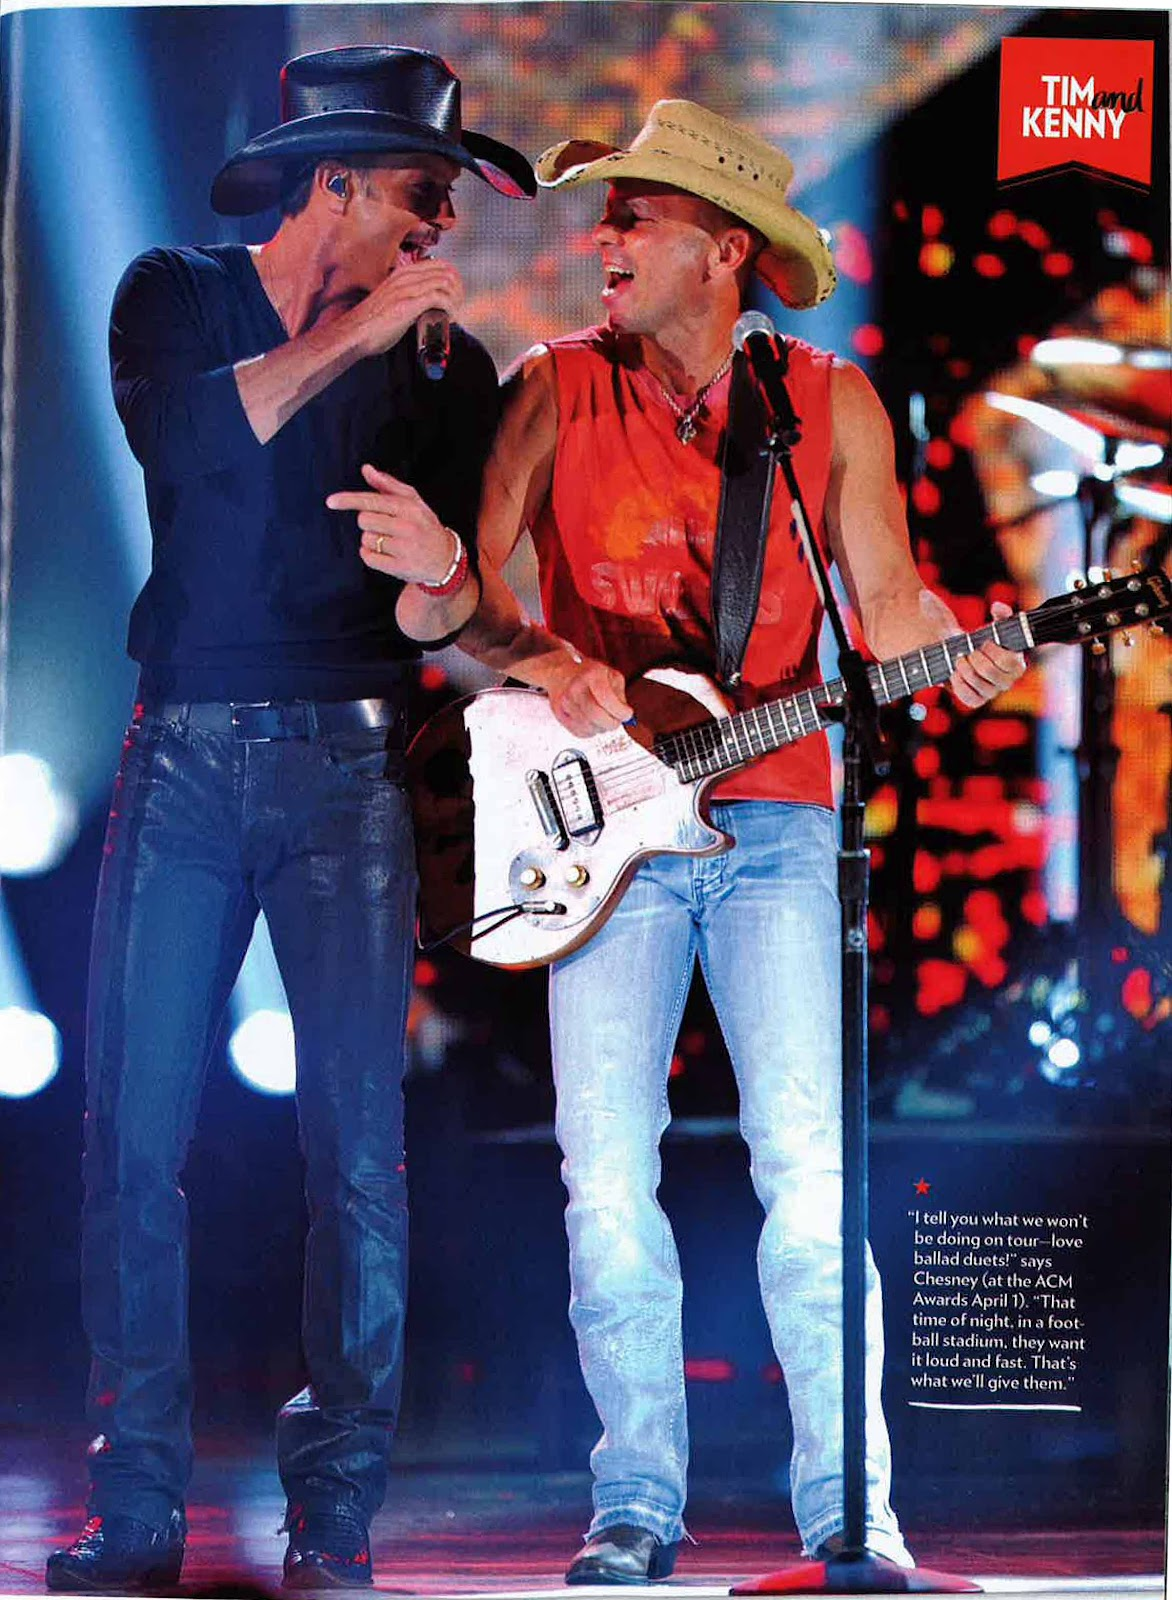 Kenny Chesney Blue Chair Bay Hats Milo Crate And Barrel Dorfman Pacific In The News People Magazine Features Kc36 Wearing His Signature Hat